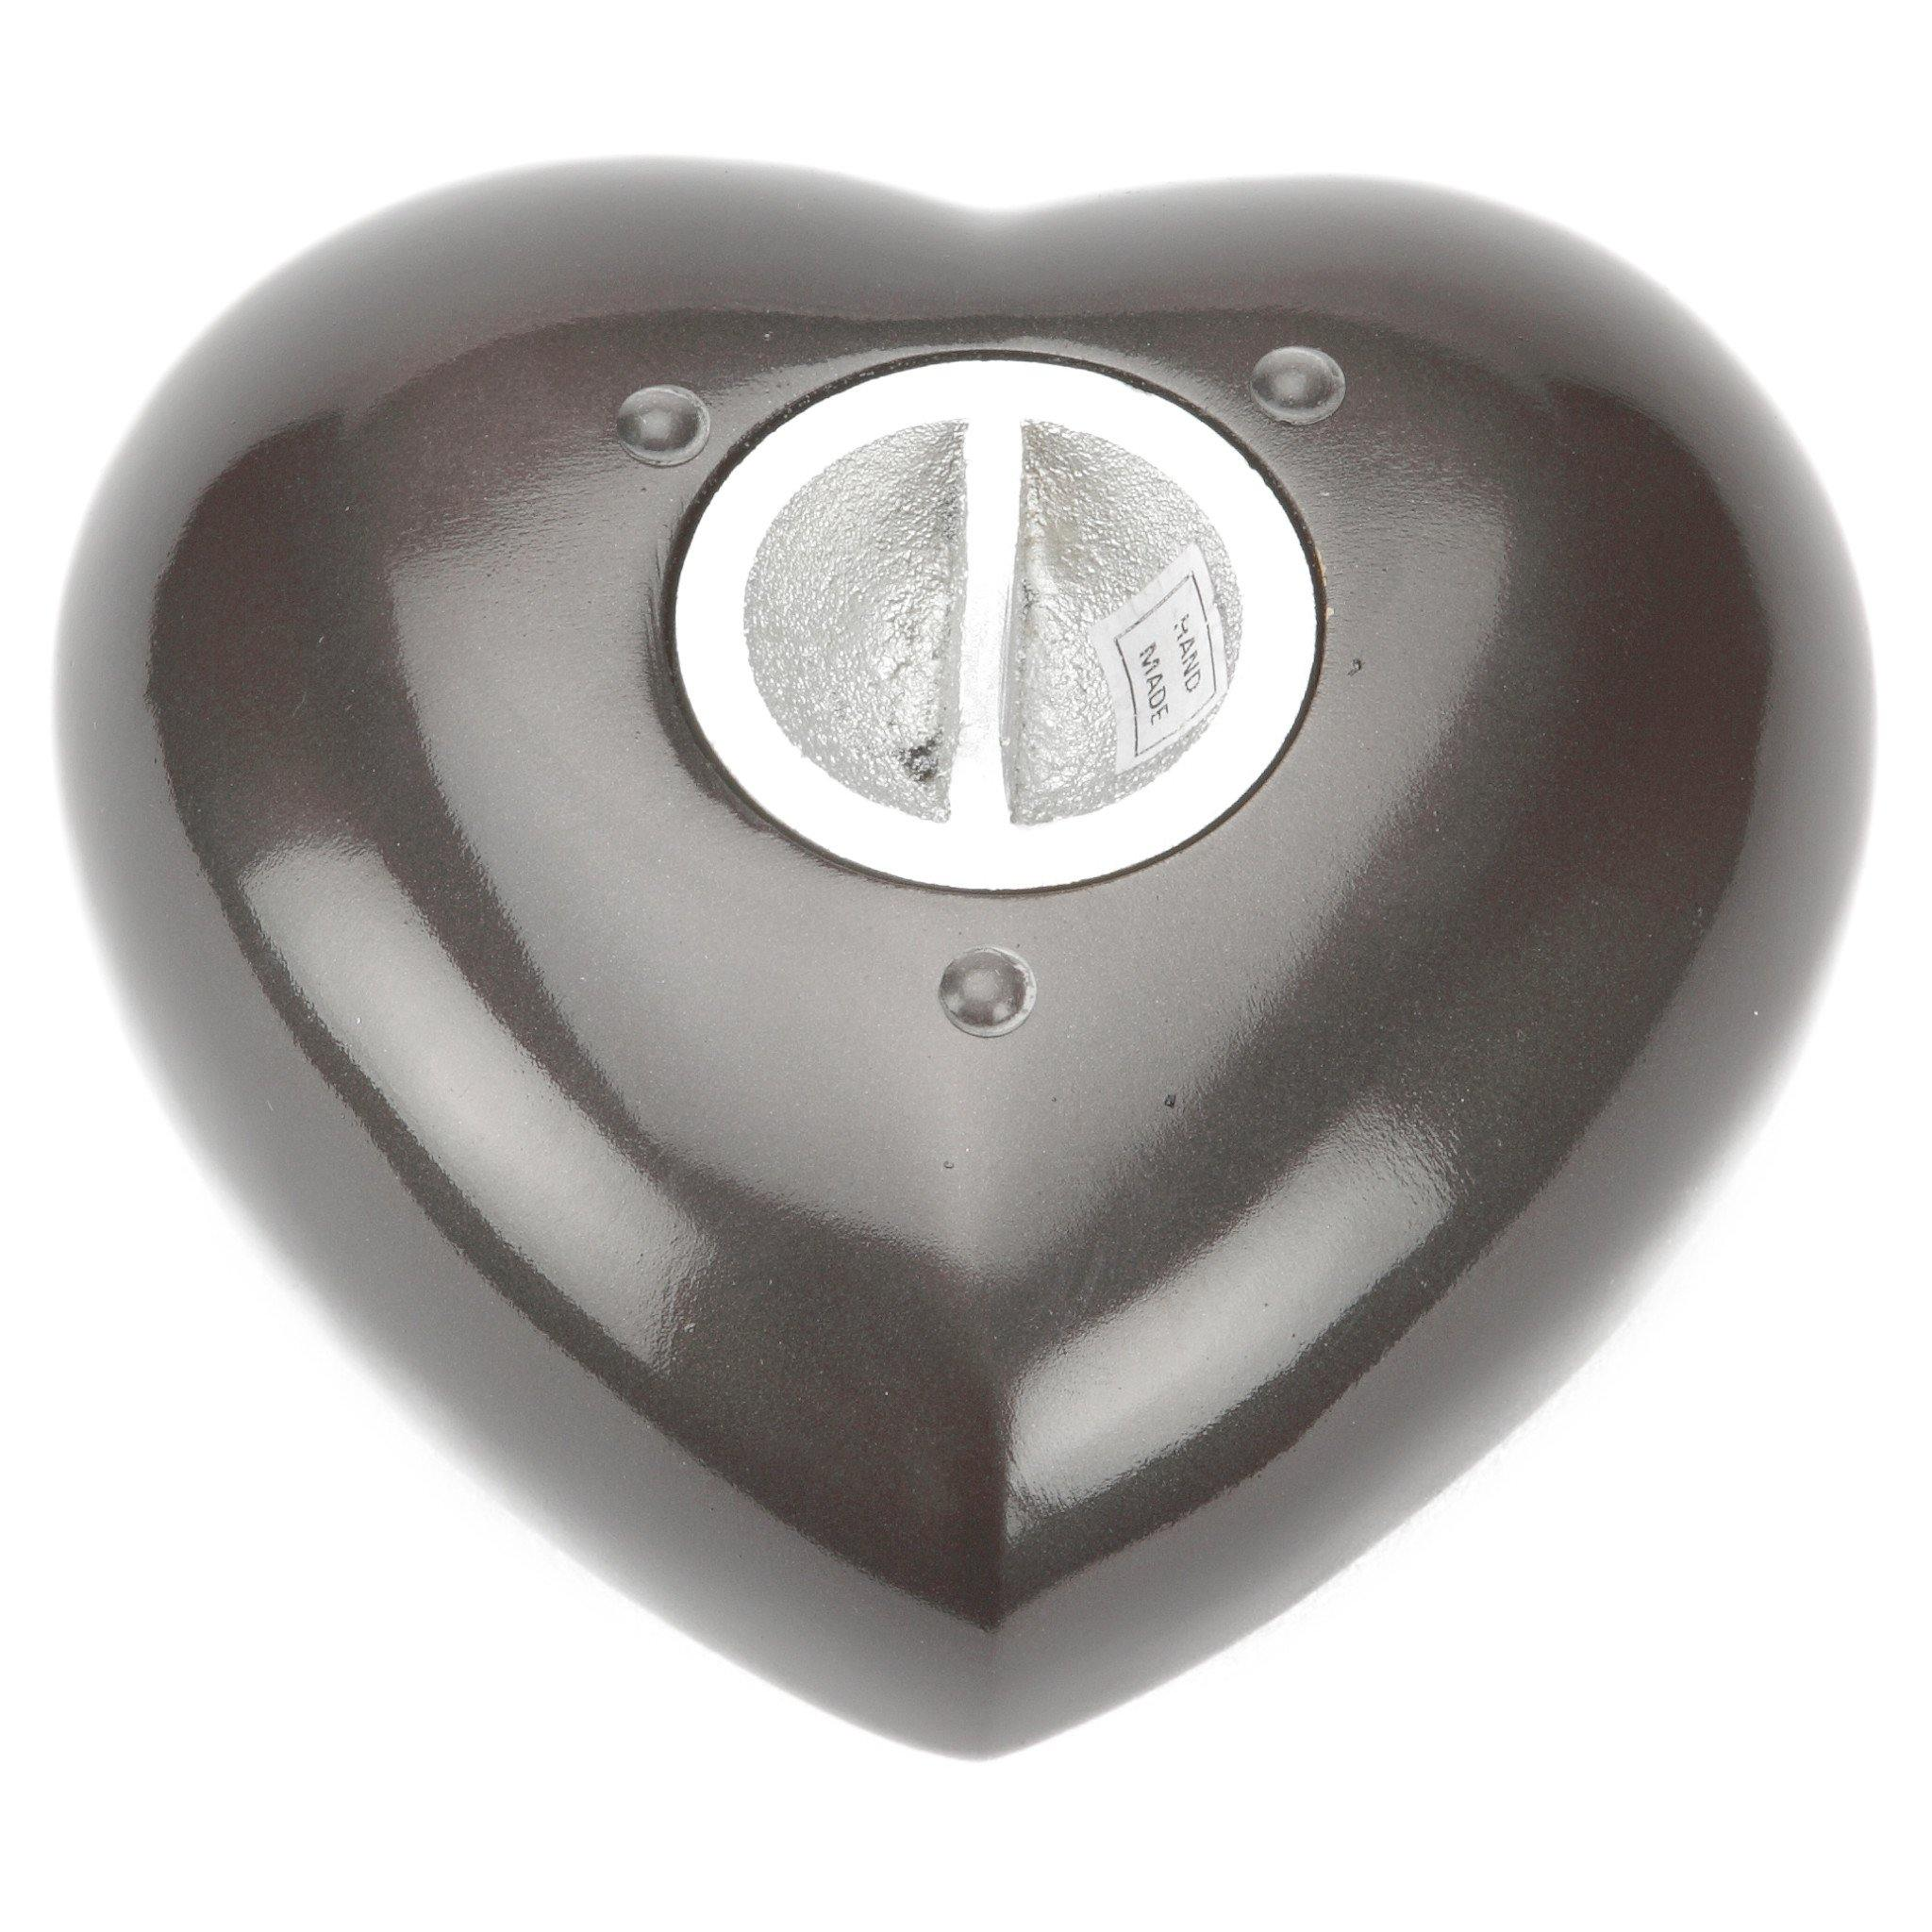 Farnham Flower Heart Cremation Ashes Keepsake Mini Urn - Urns UK